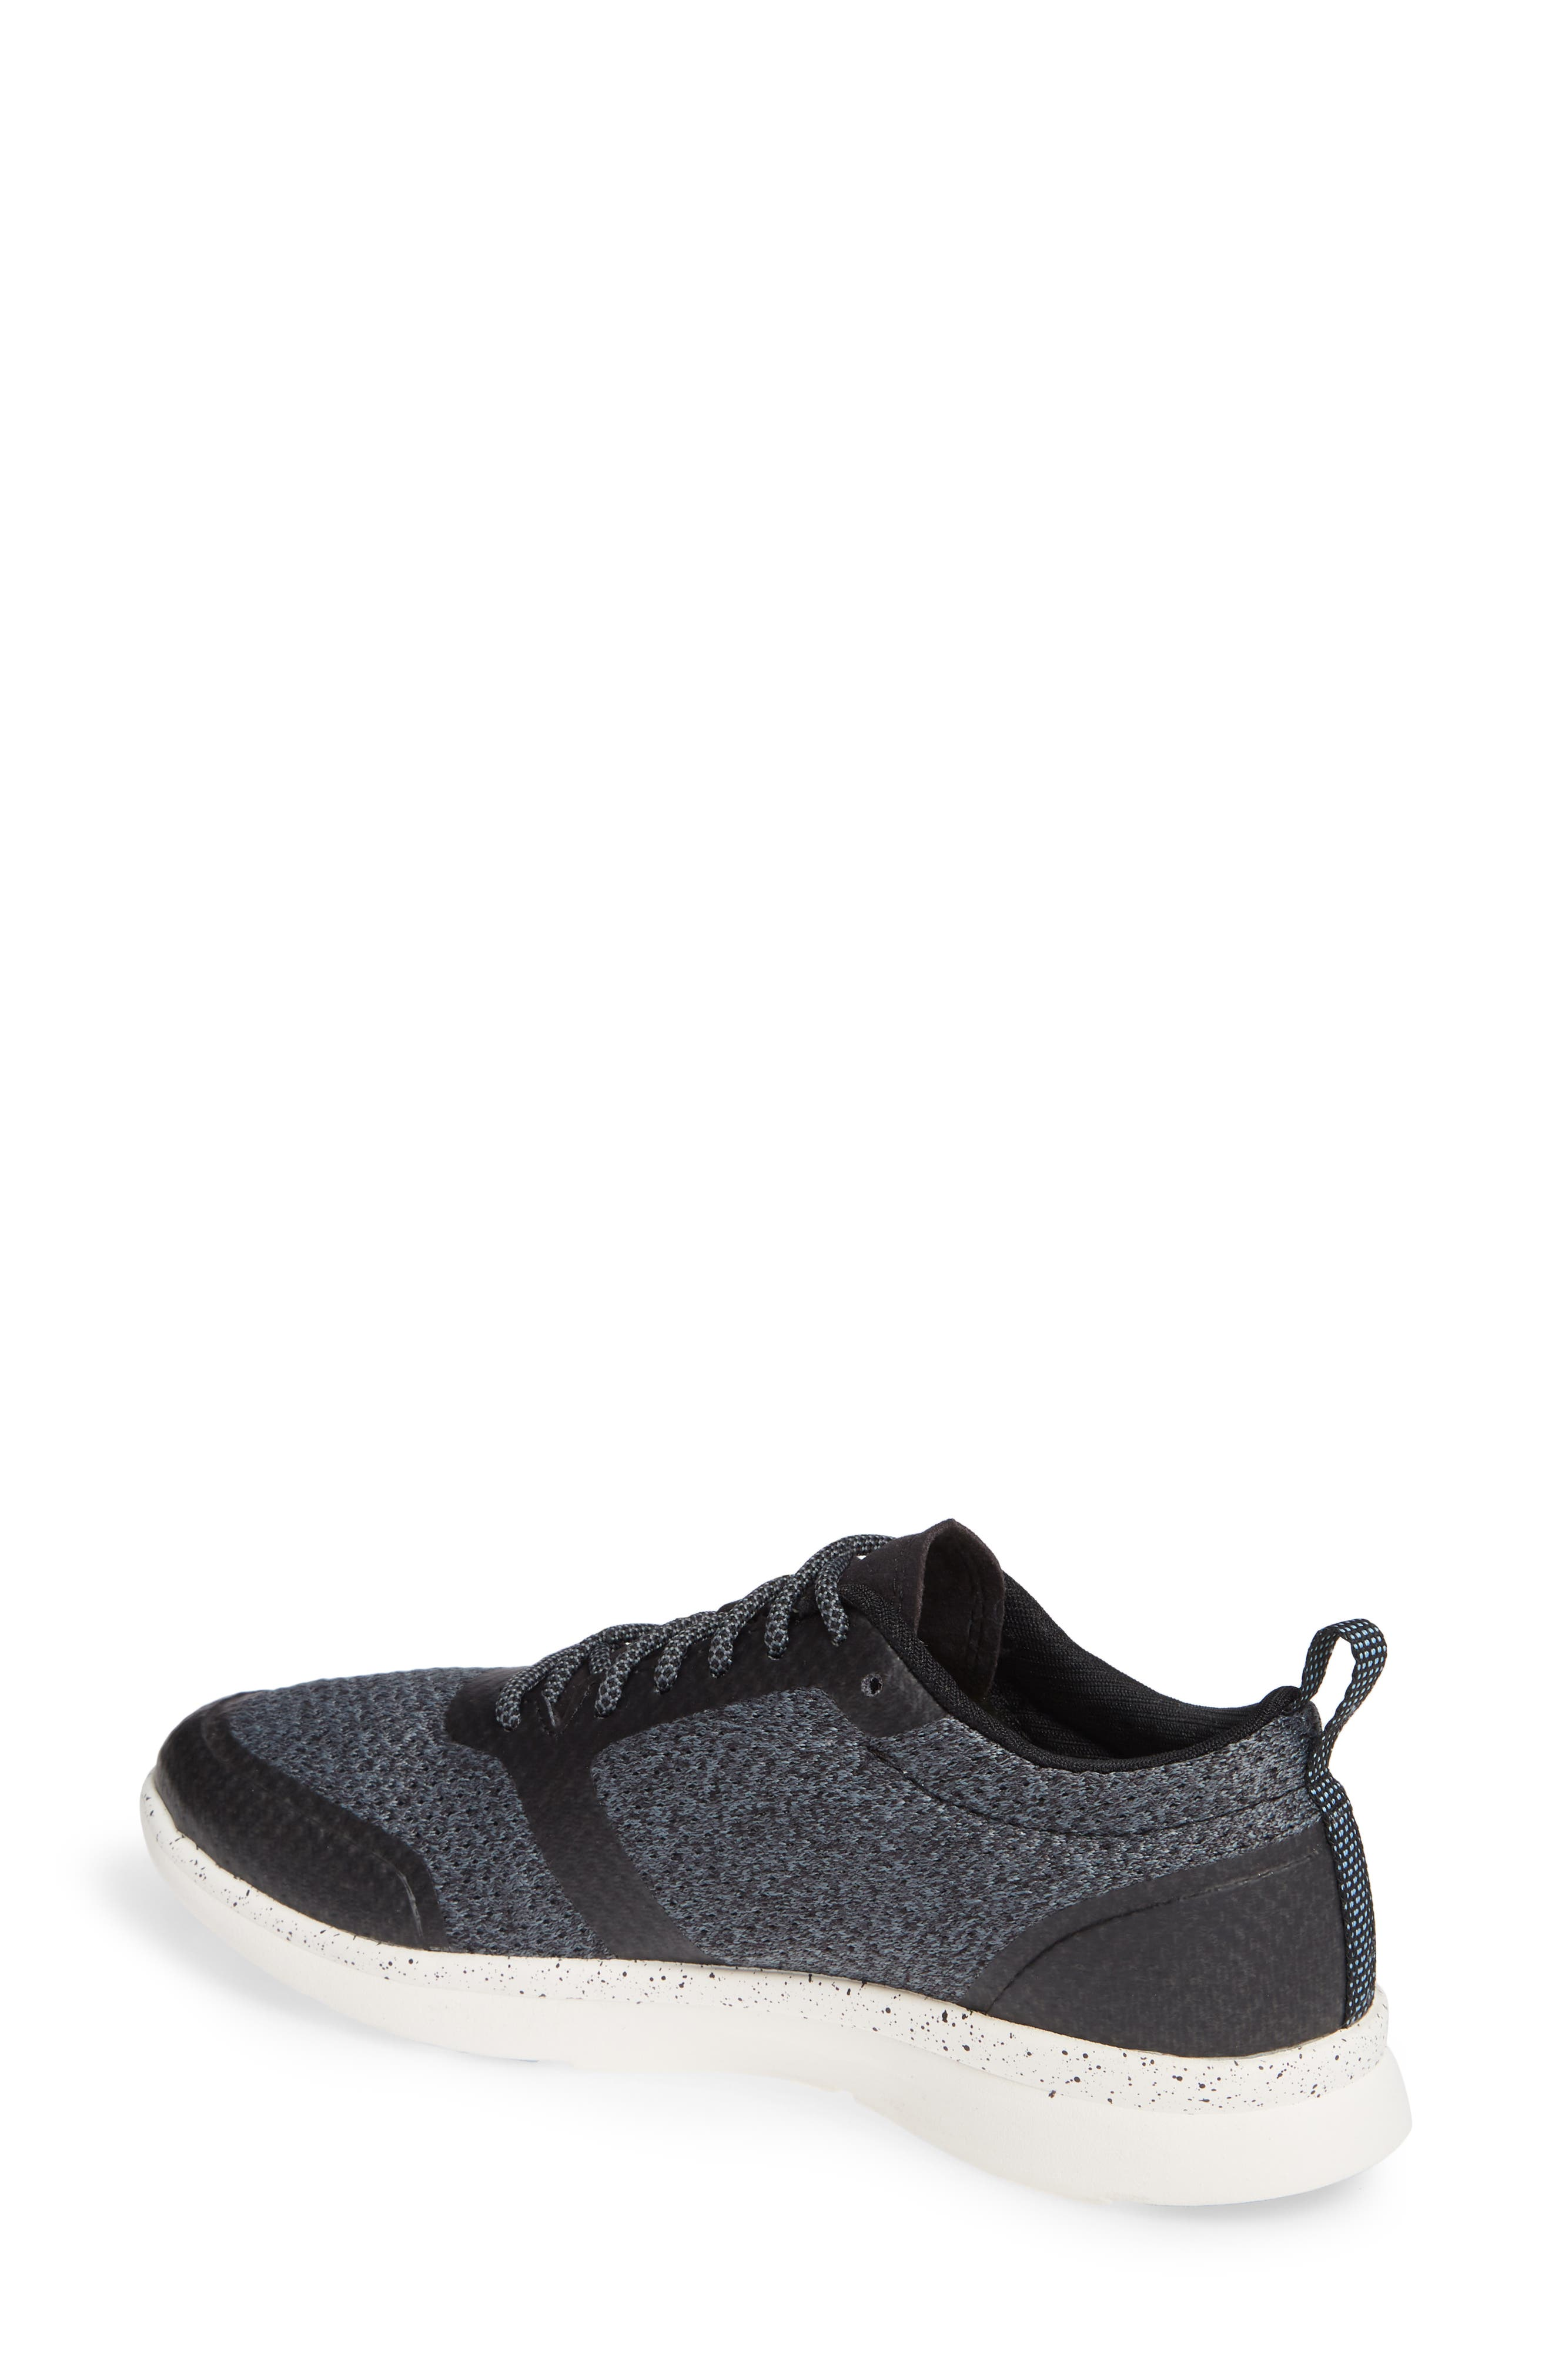 Linden Sneaker,                             Alternate thumbnail 2, color,                             BLACK FABRIC